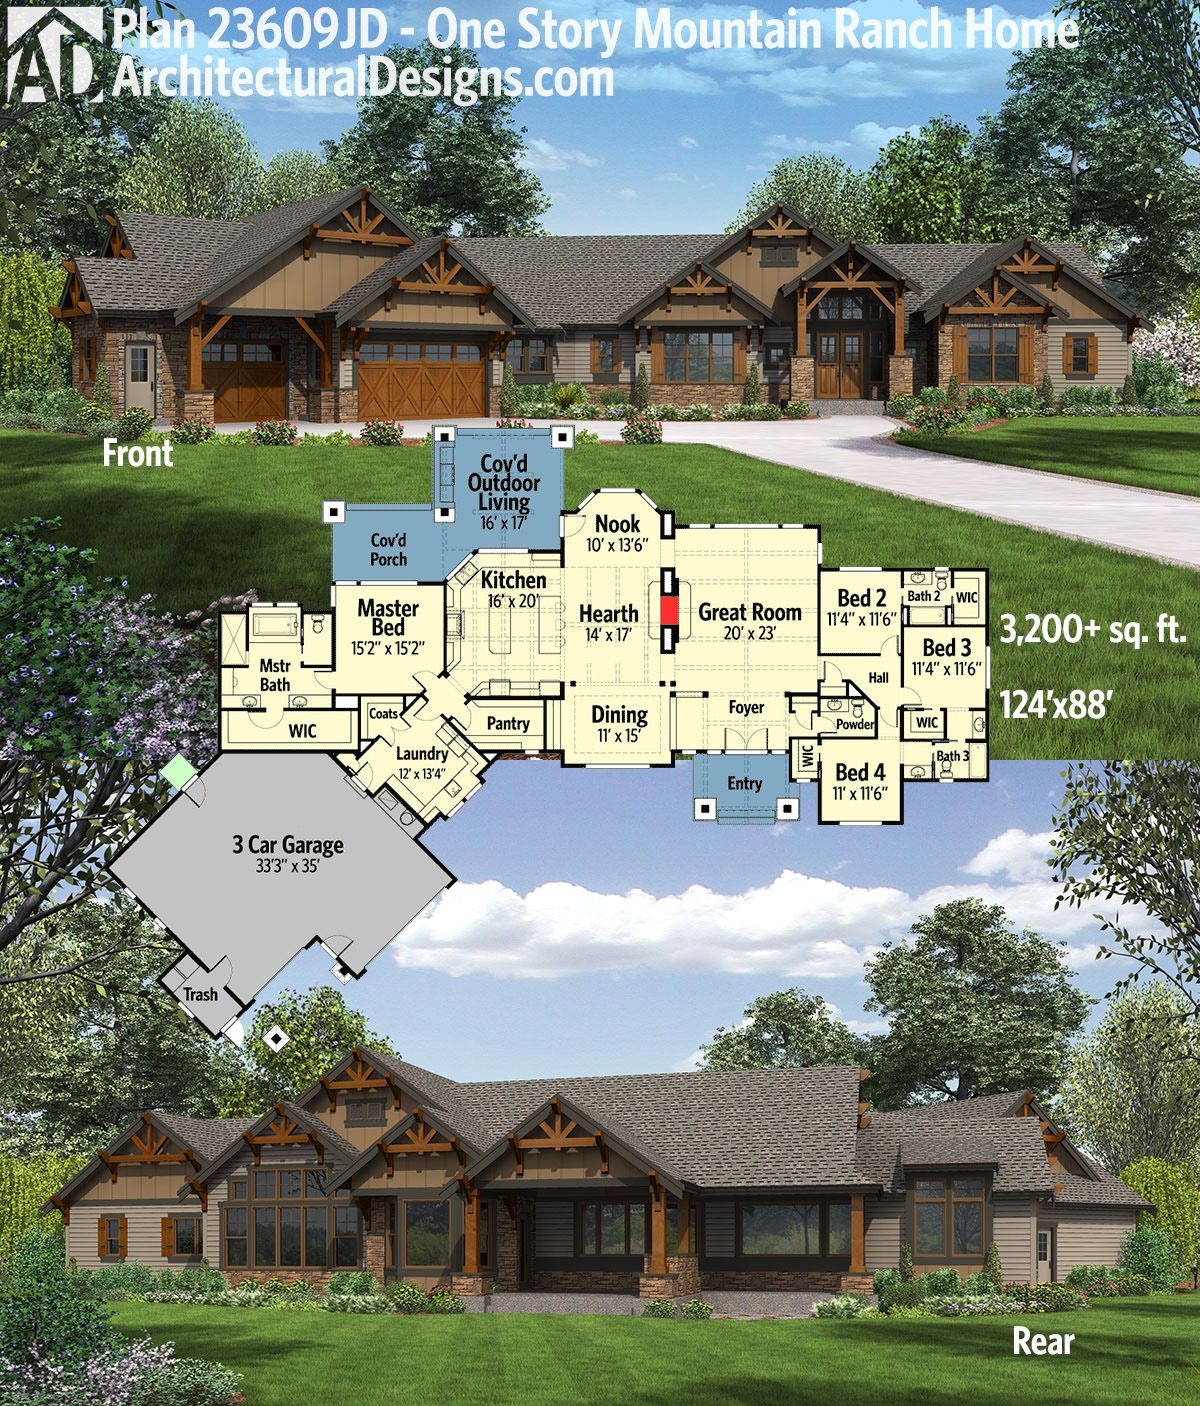 Plan 23609jd one story mountain ranch home with options for Ranch home plans with cost to build